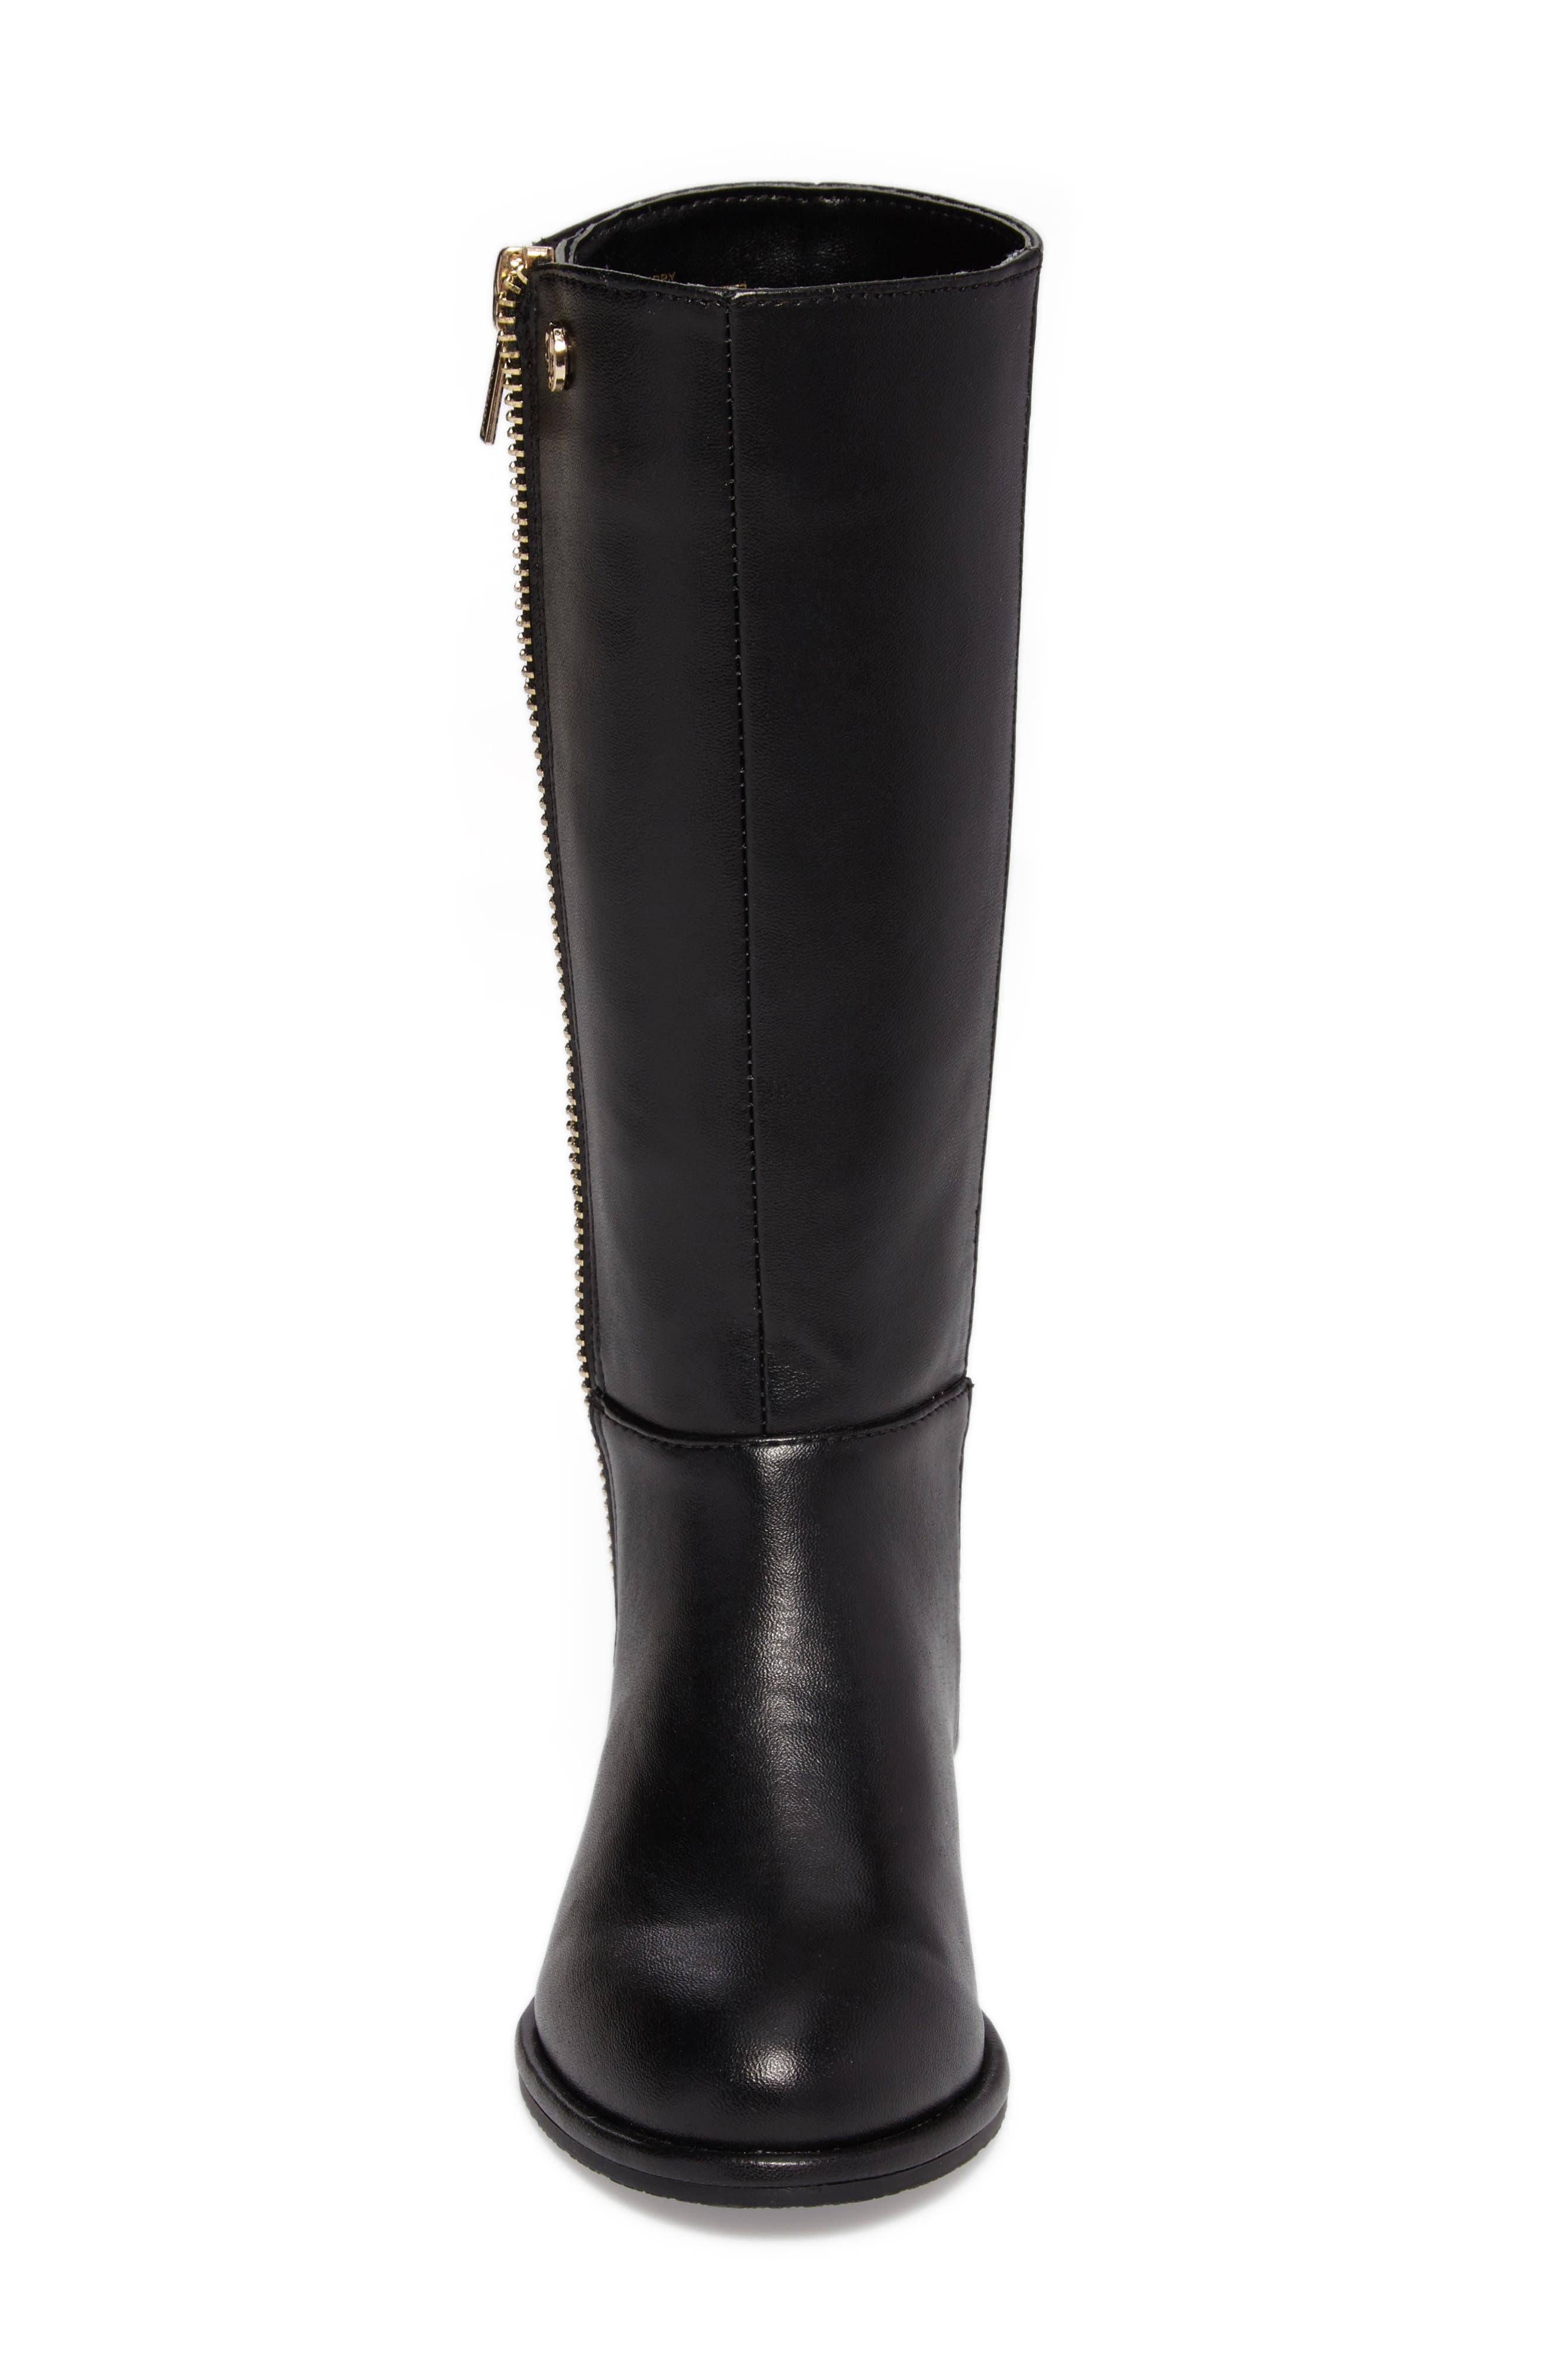 Lowland Riding Boot,                             Alternate thumbnail 4, color,                             001